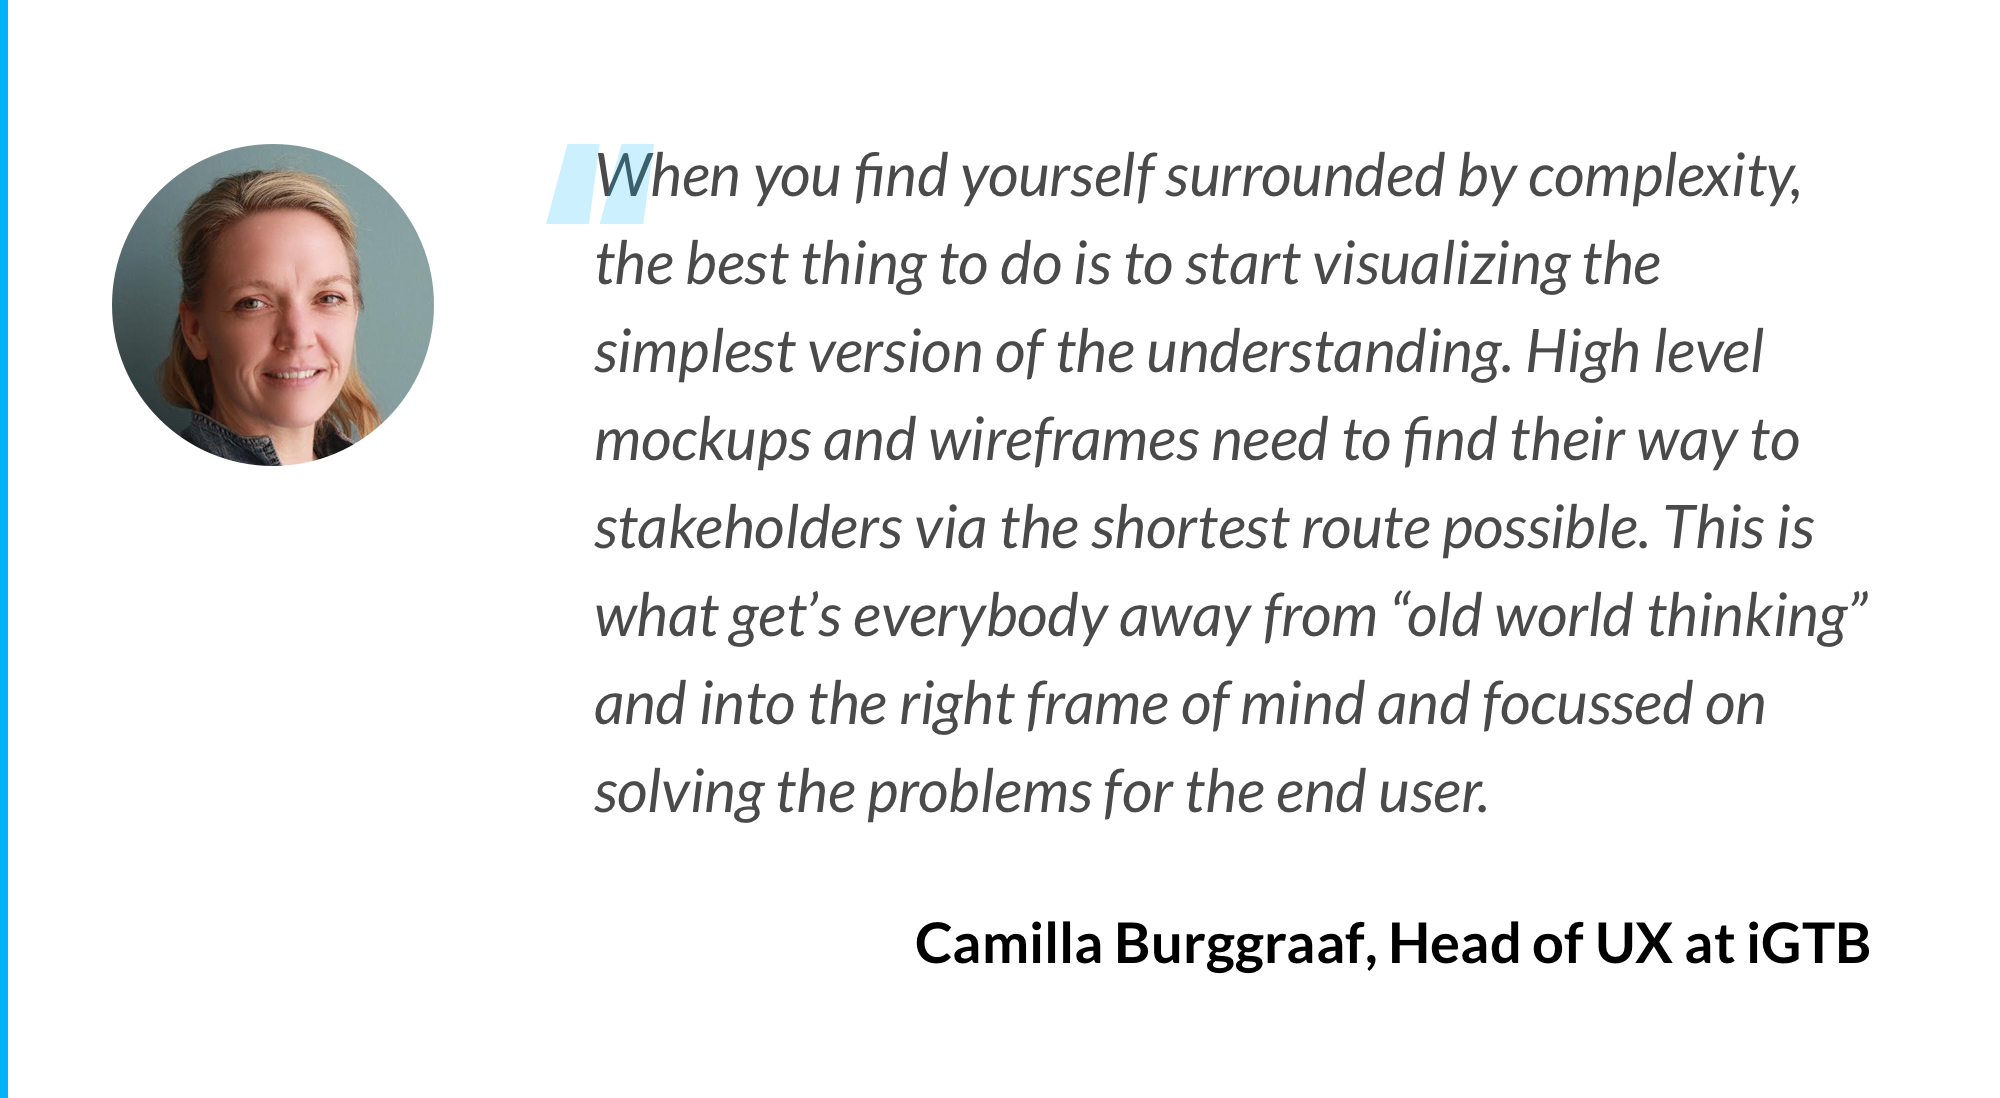 igtb-case-study-quote-camilla-burggraaf-2-at-2x.png